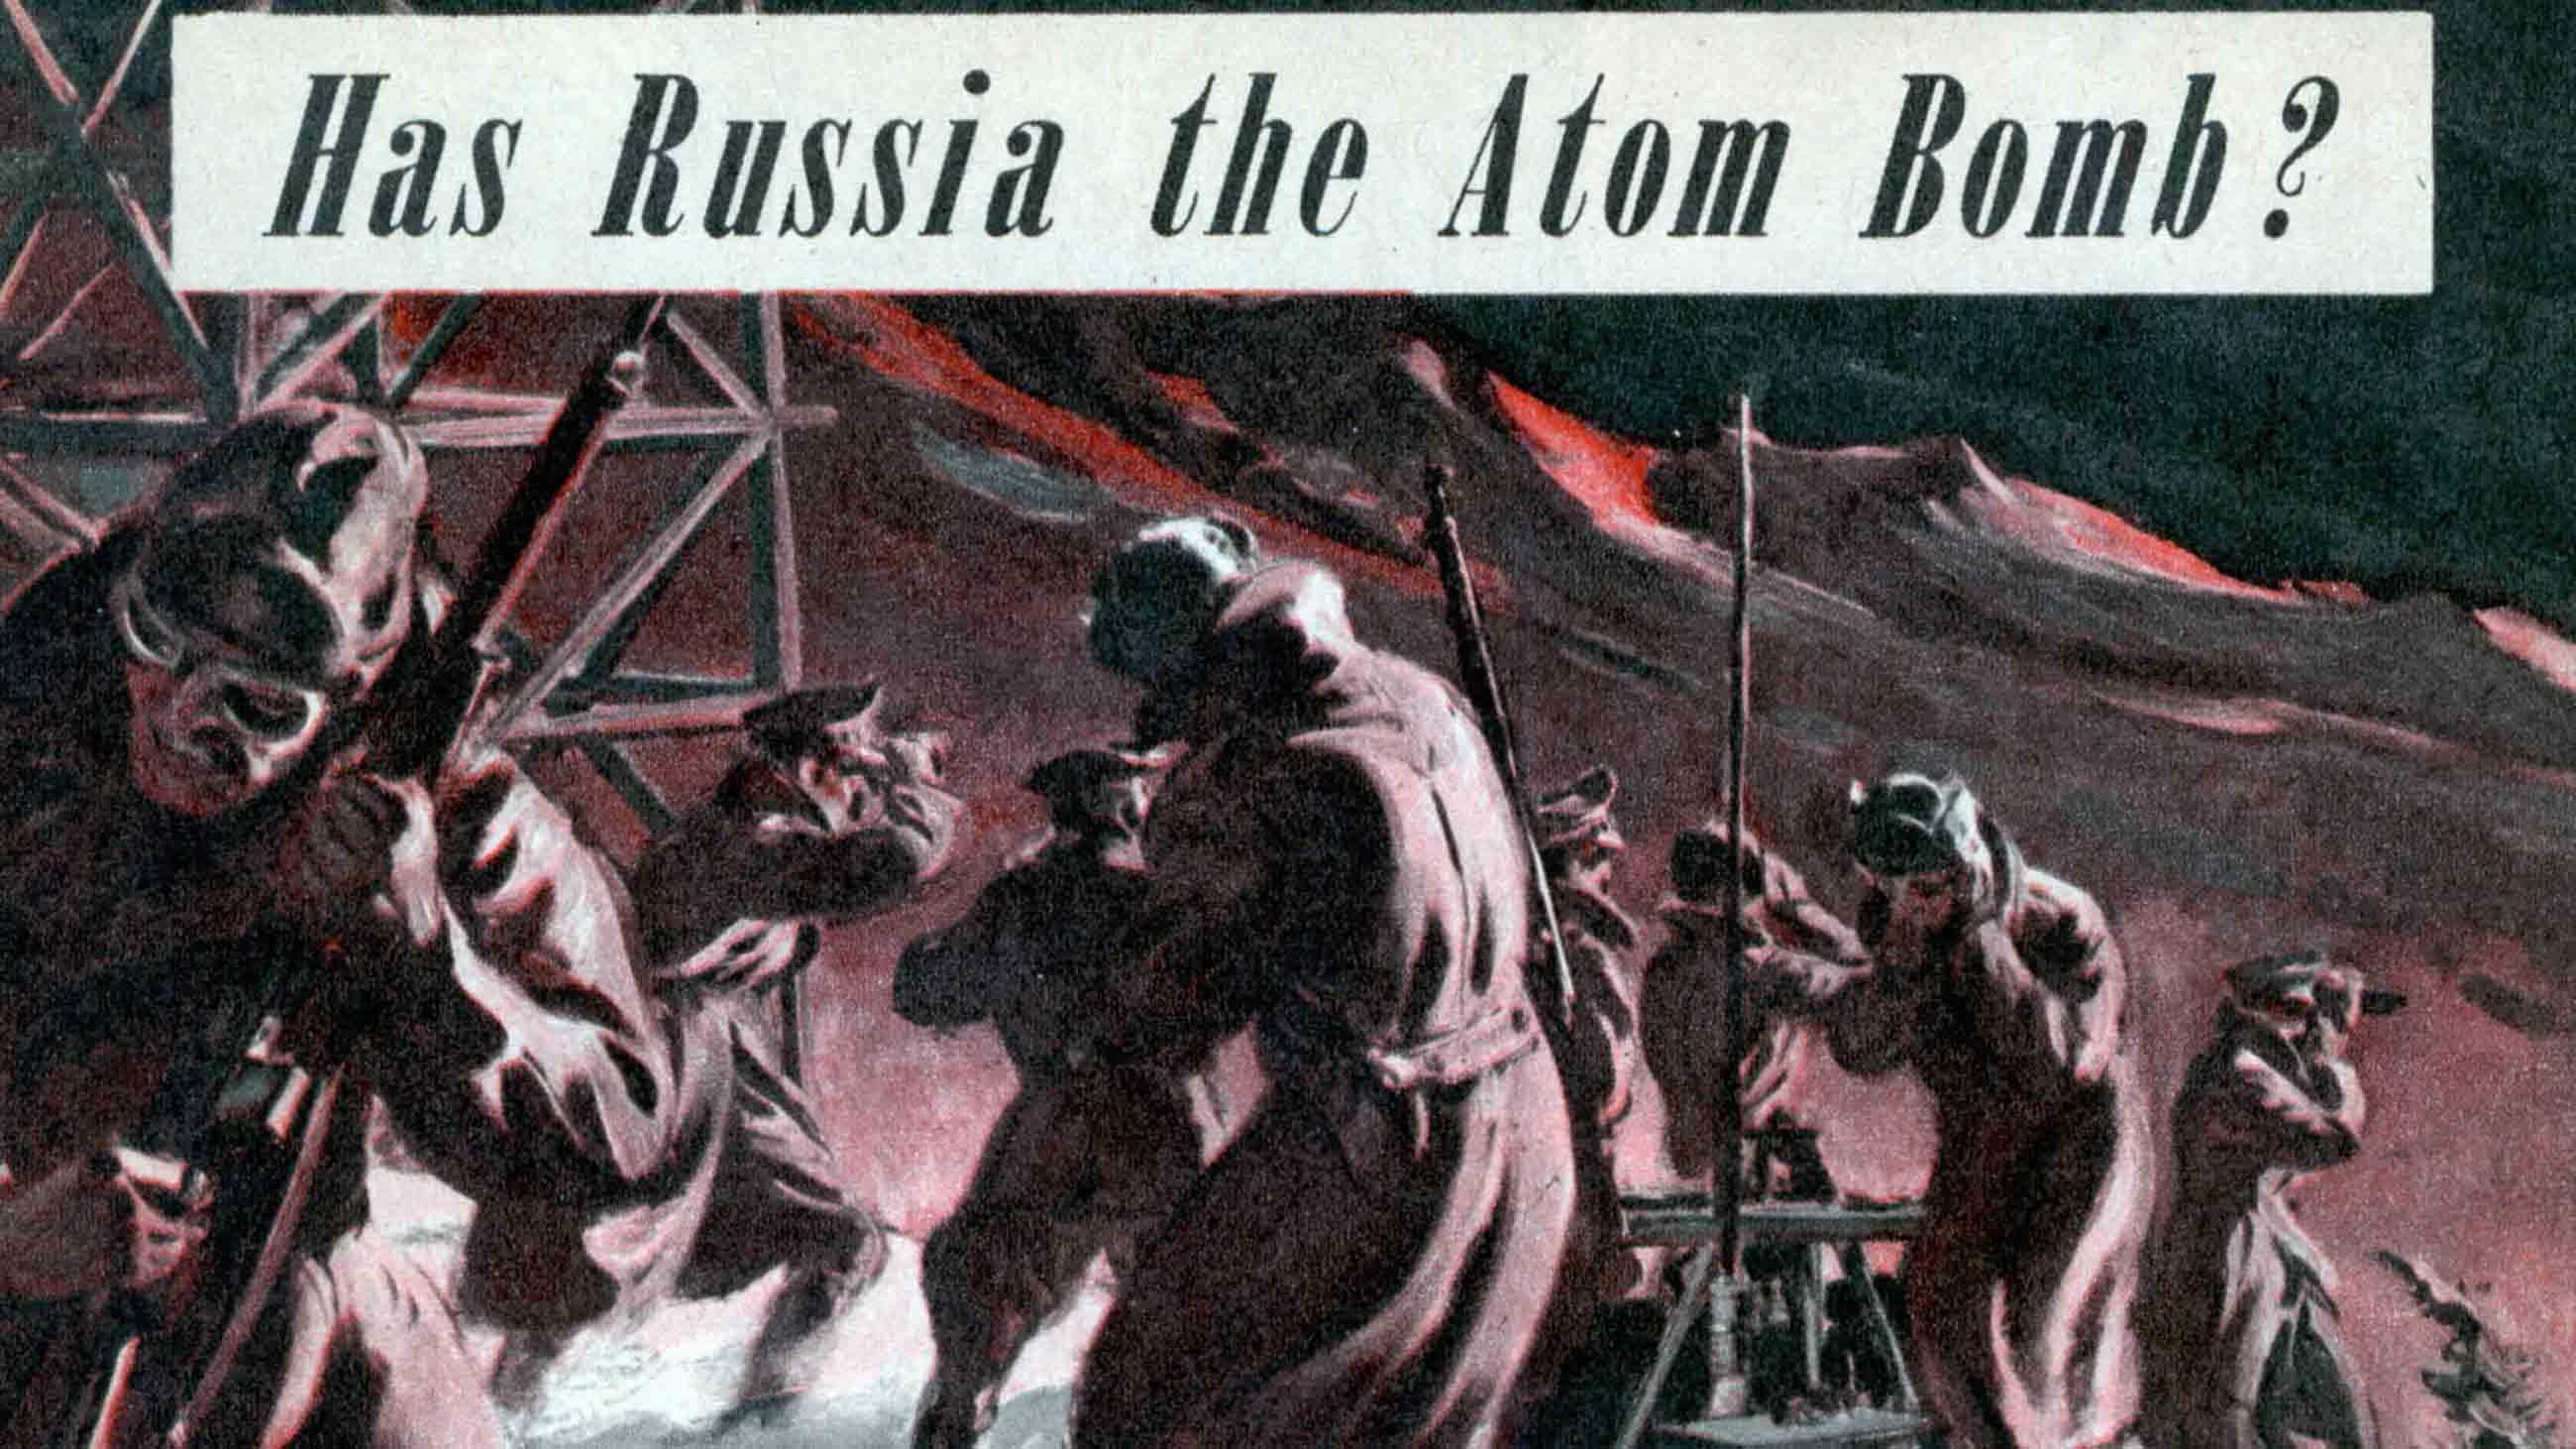 A 1948 article in Mechanix Illustrated vividly captured American fears about the Soviet nuclear program.